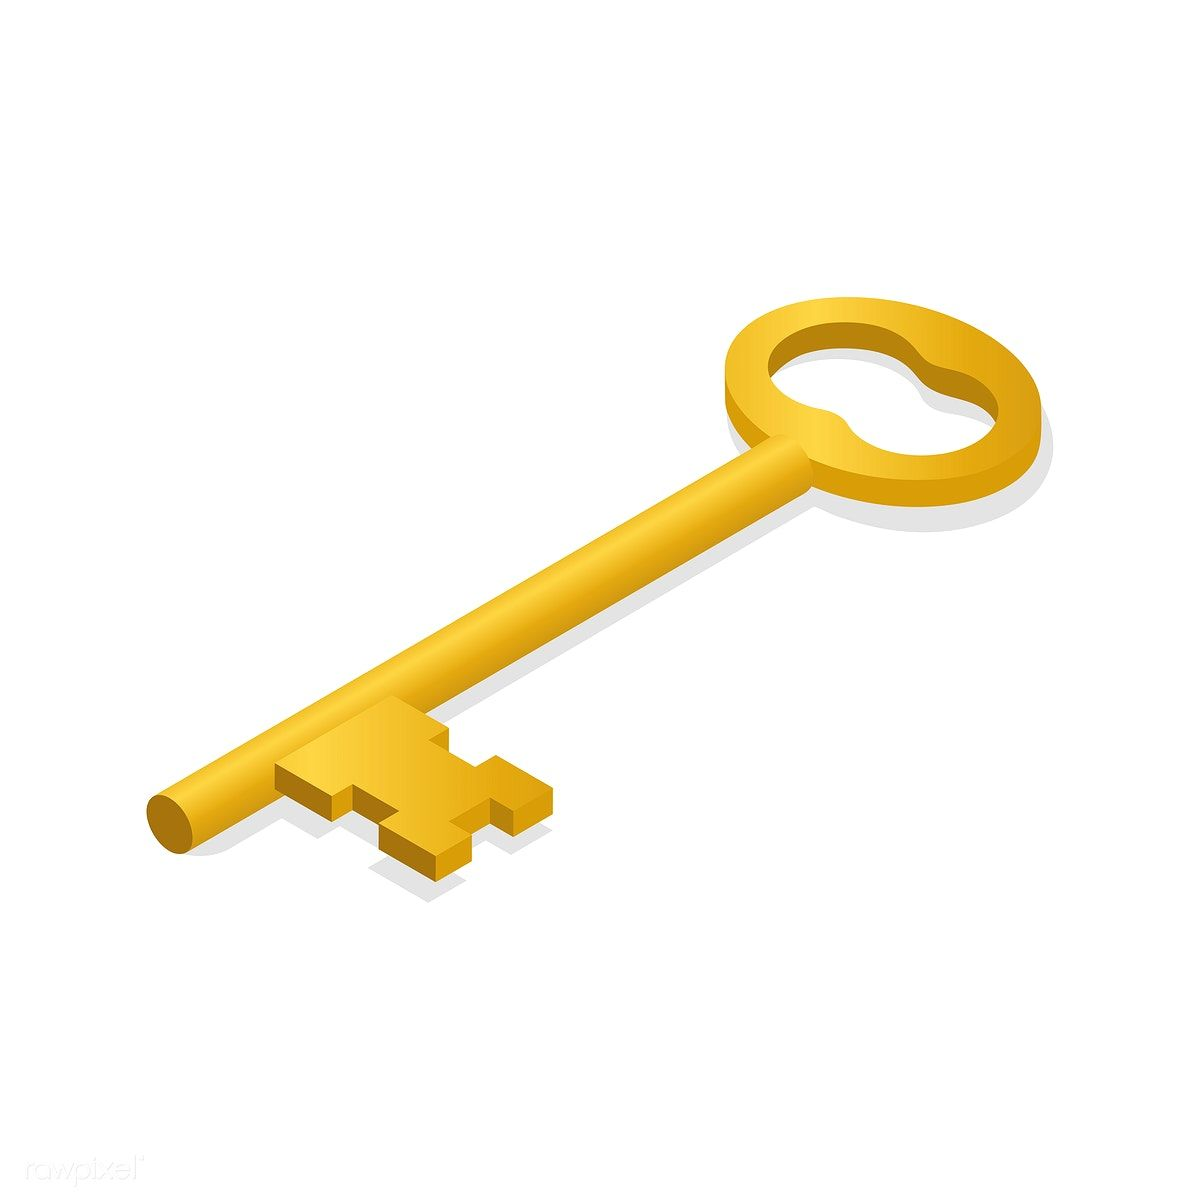 Vector Image Of Key Icon Free Image By Rawpixel Com Key Icon Key Drawings Vector Images